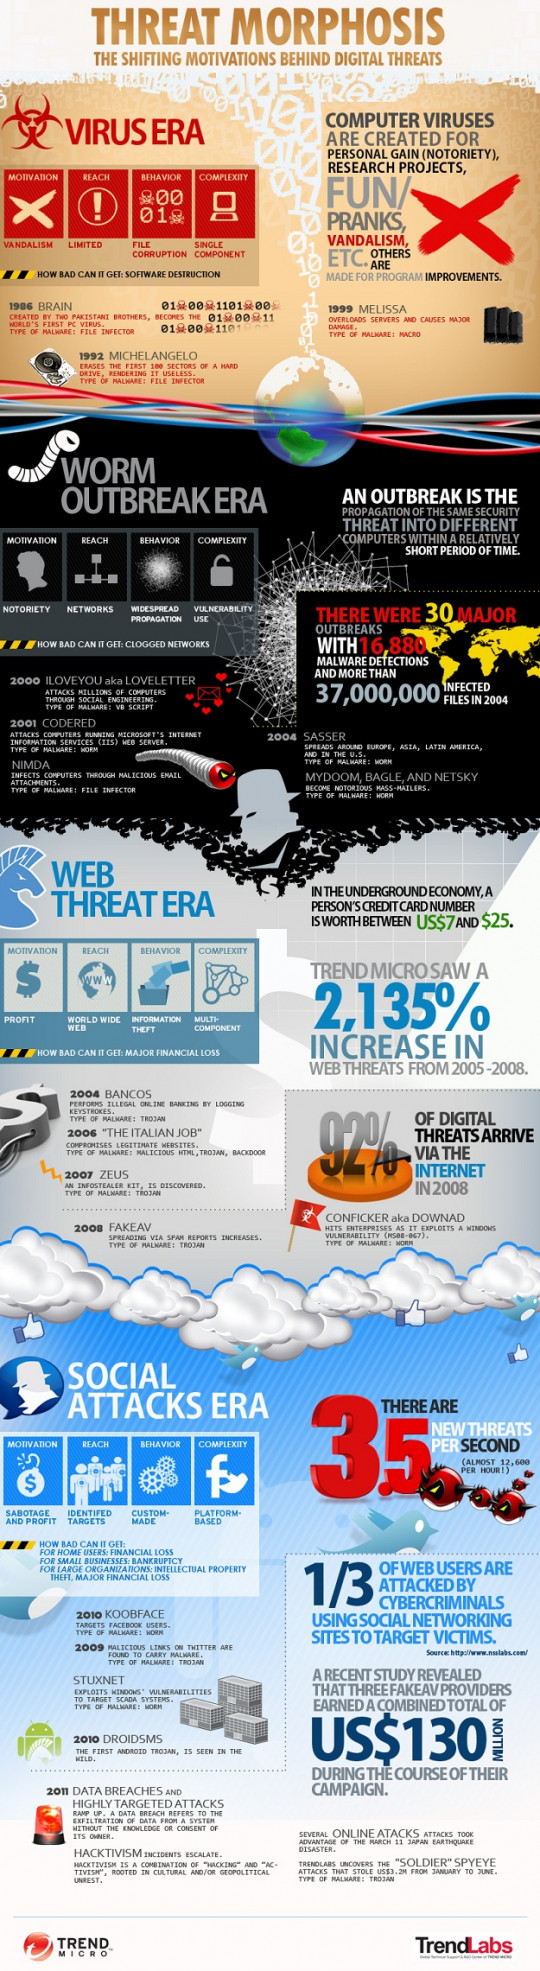 Two Decades of Malware